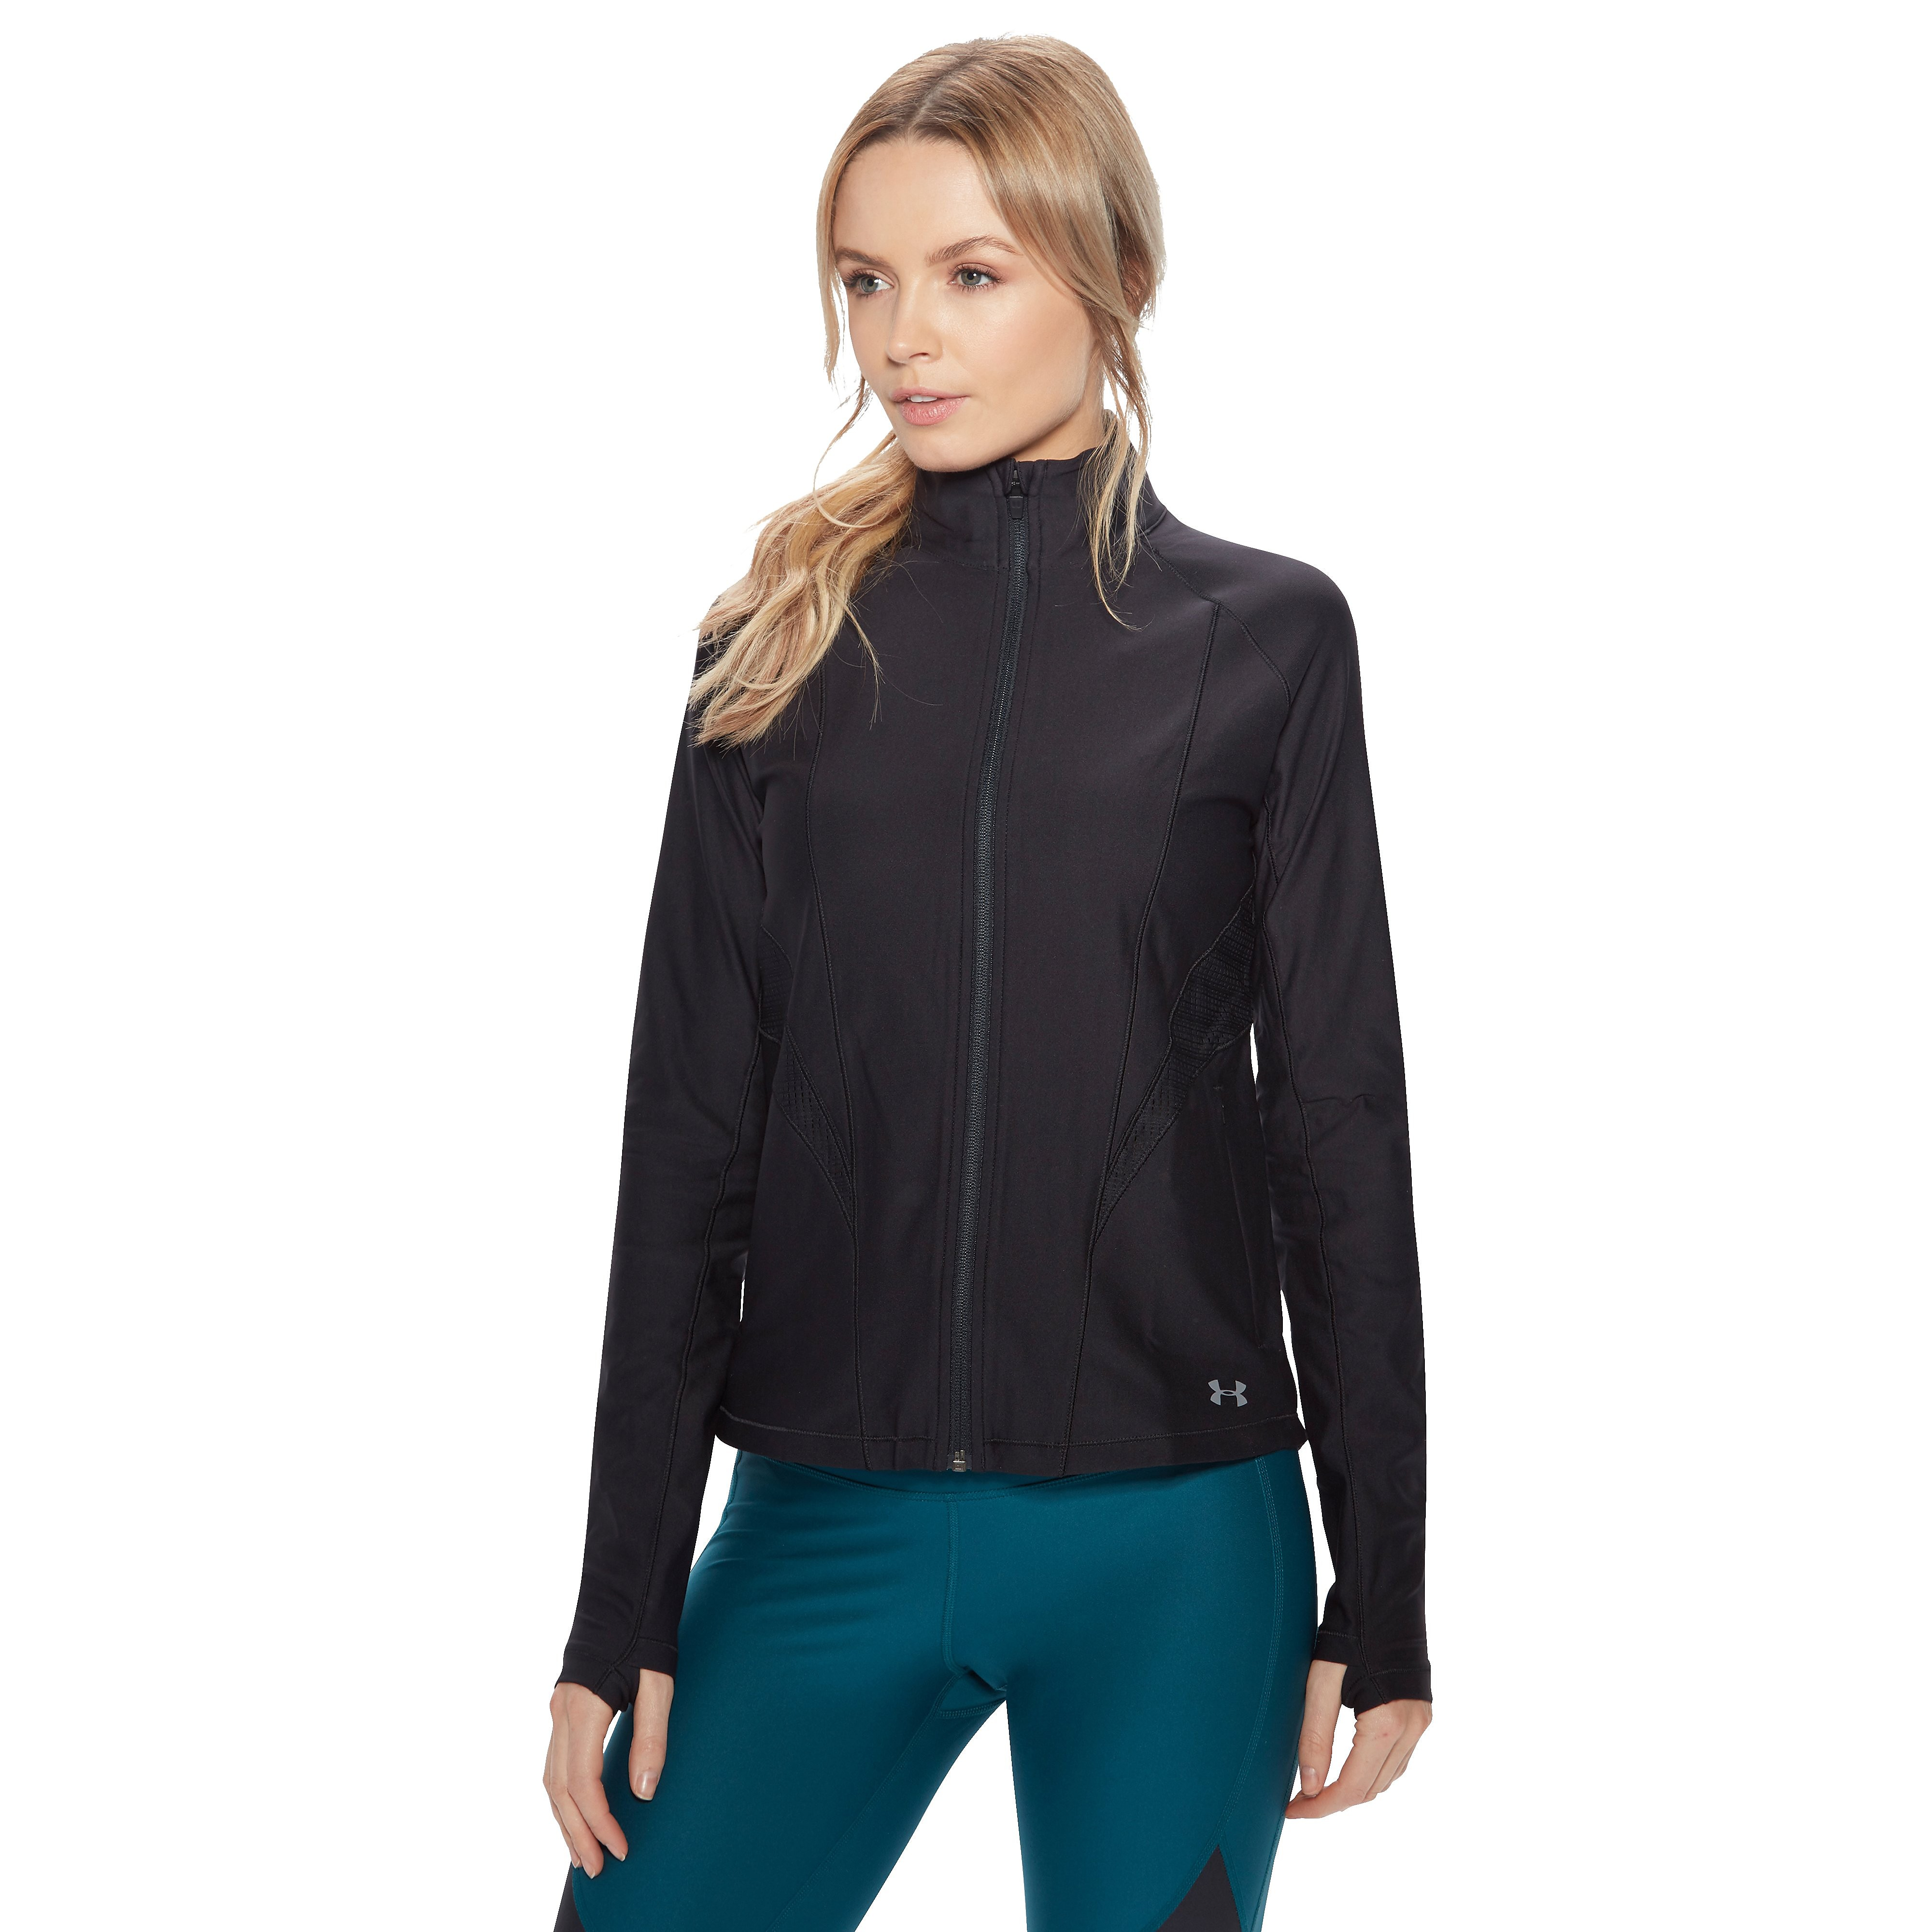 Women's Under Armour Balance Threadborne Full Zip Tech Top - Black, Black